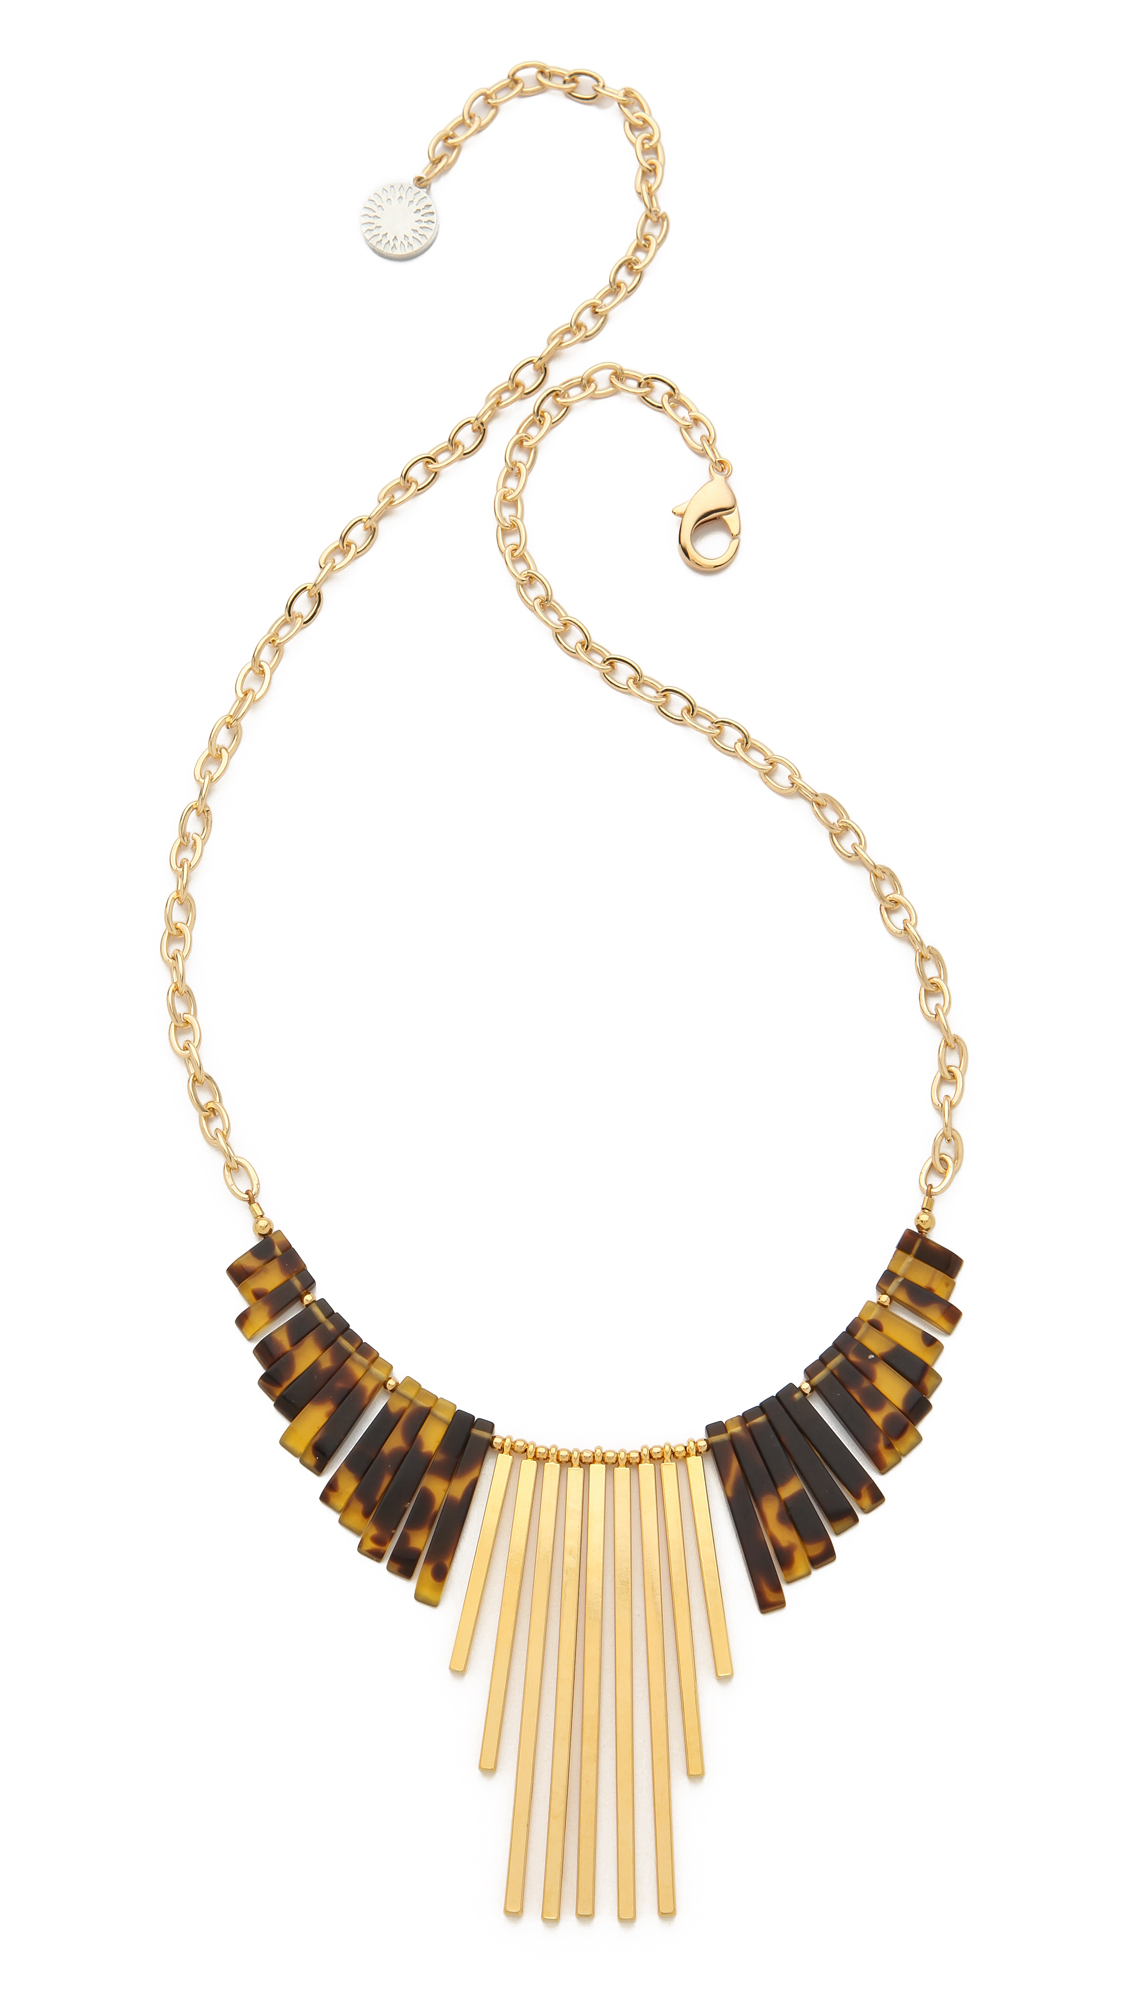 Gemma redux Tortoiseshell Long Drop Necklace in Metallic | Lyst